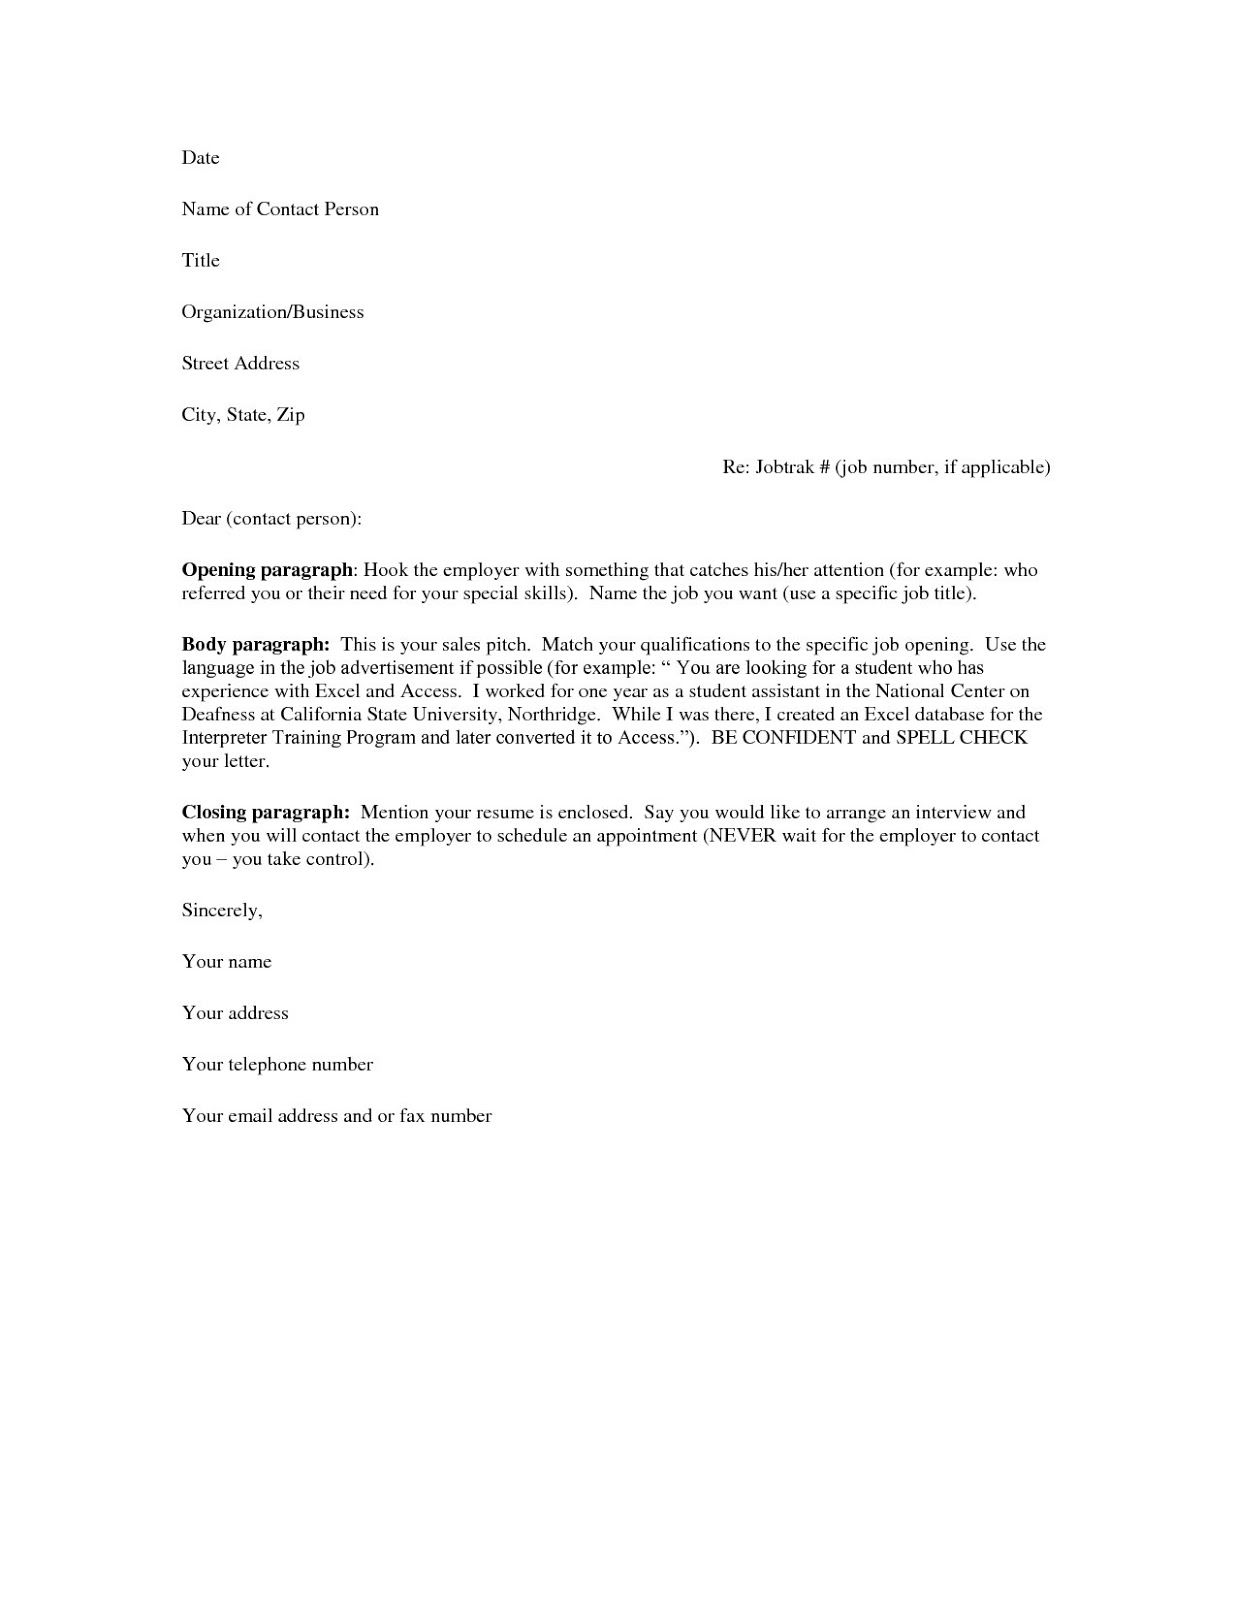 resume letters samples resume letters samples makemoney alex tk - Format Cover Letter For Resume